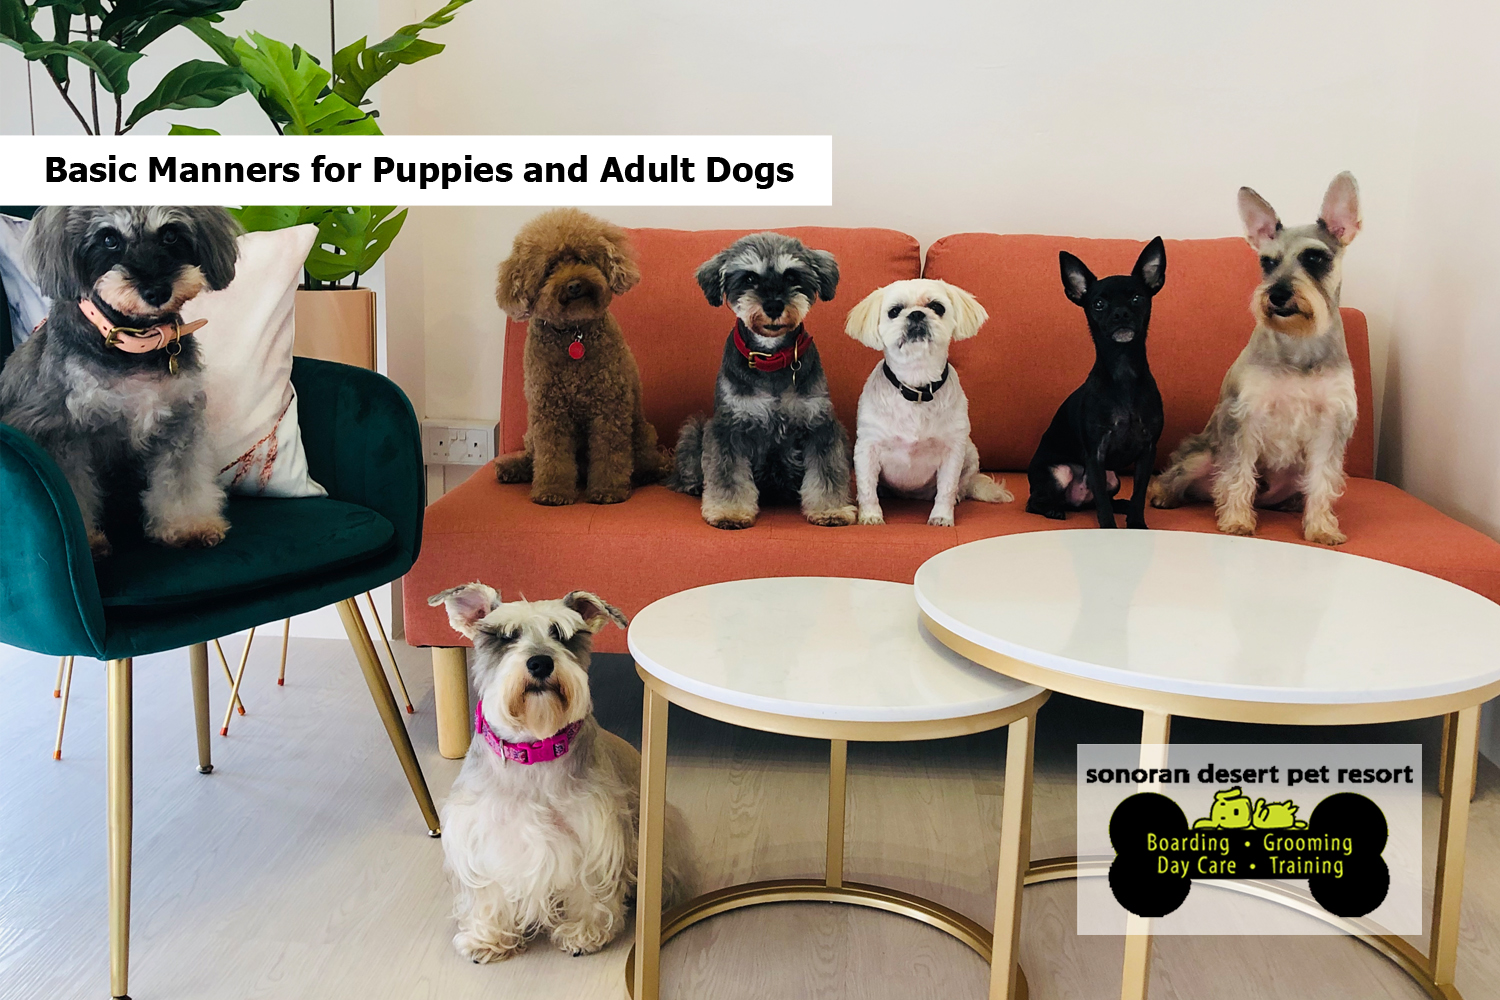 Basic Manners for Puppies and Adult Dogs